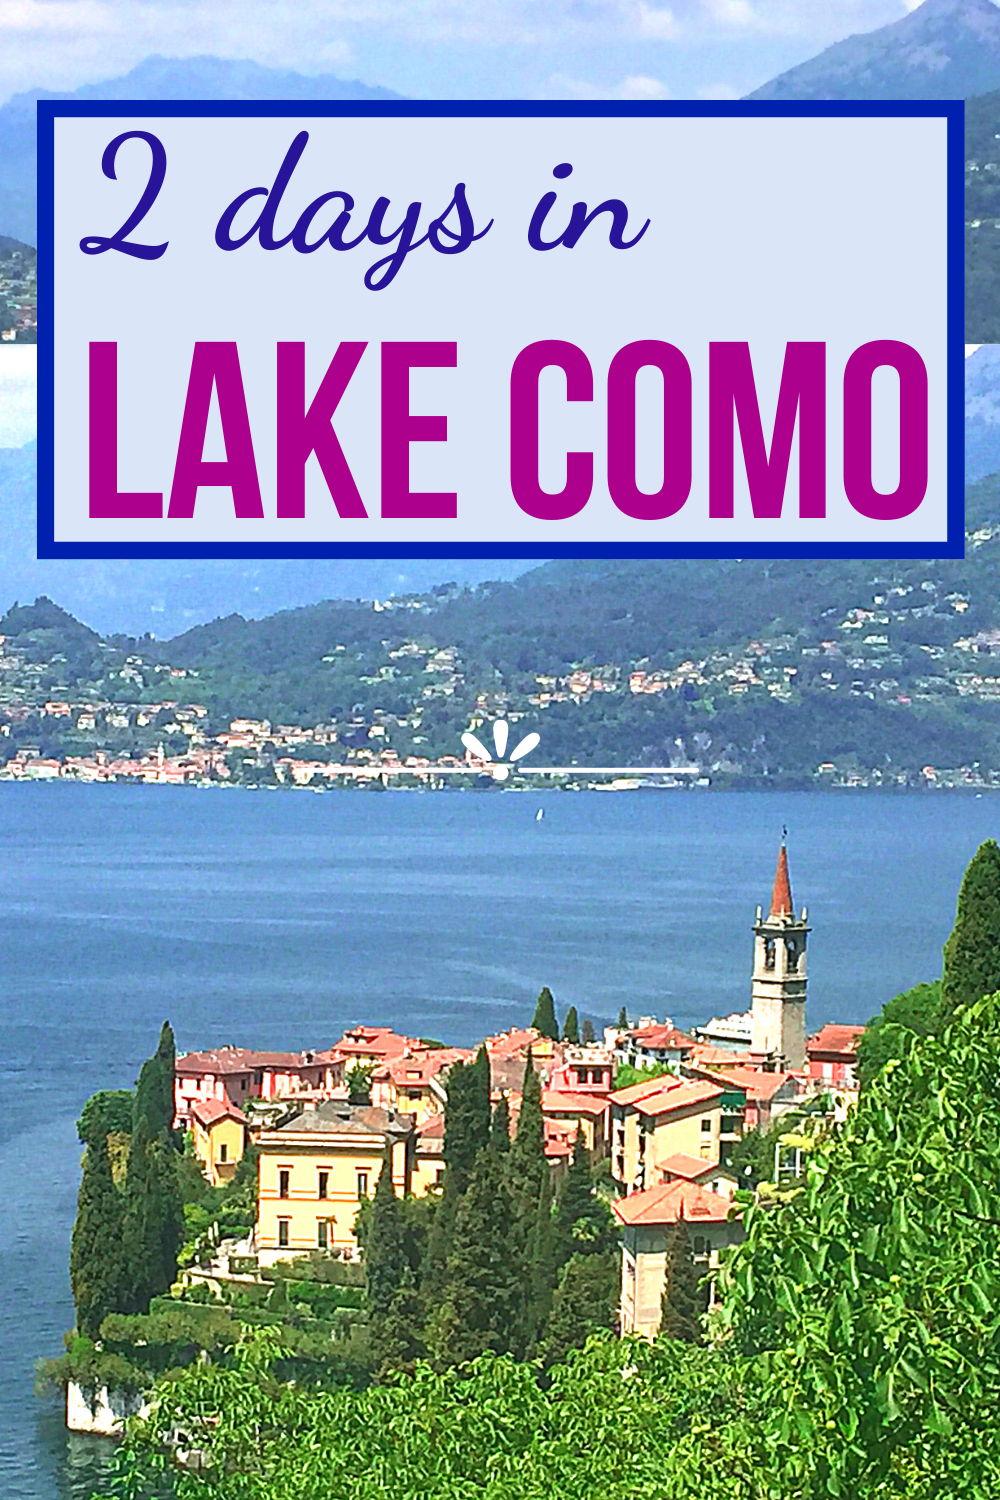 How To Get From Milan To Varenna By Train